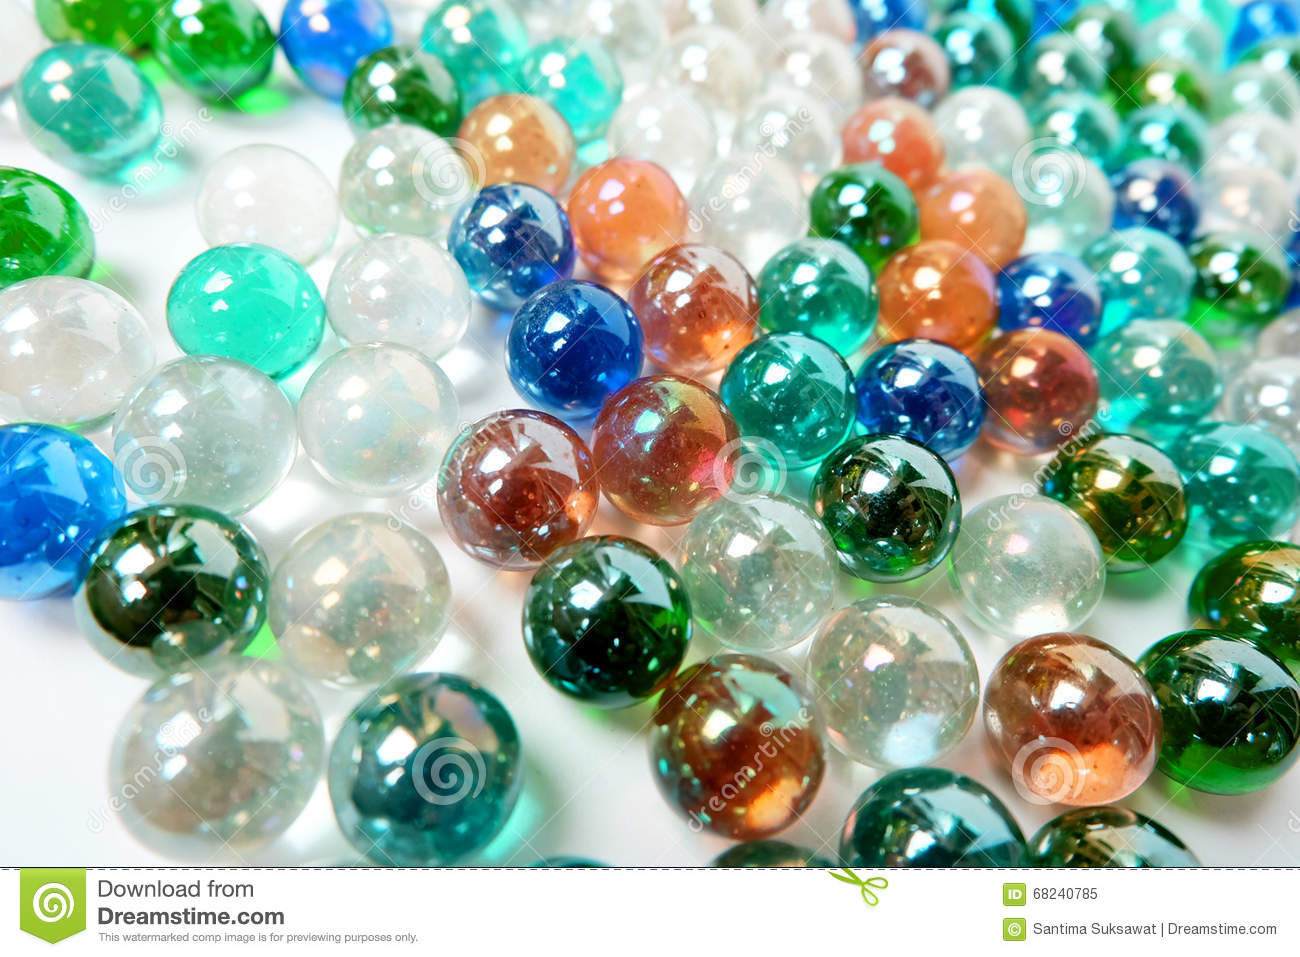 Must see Wallpaper Marble Ball - colorfull-marble-ball-art-wallpaper-compose-68240785  Trends_95584.jpg